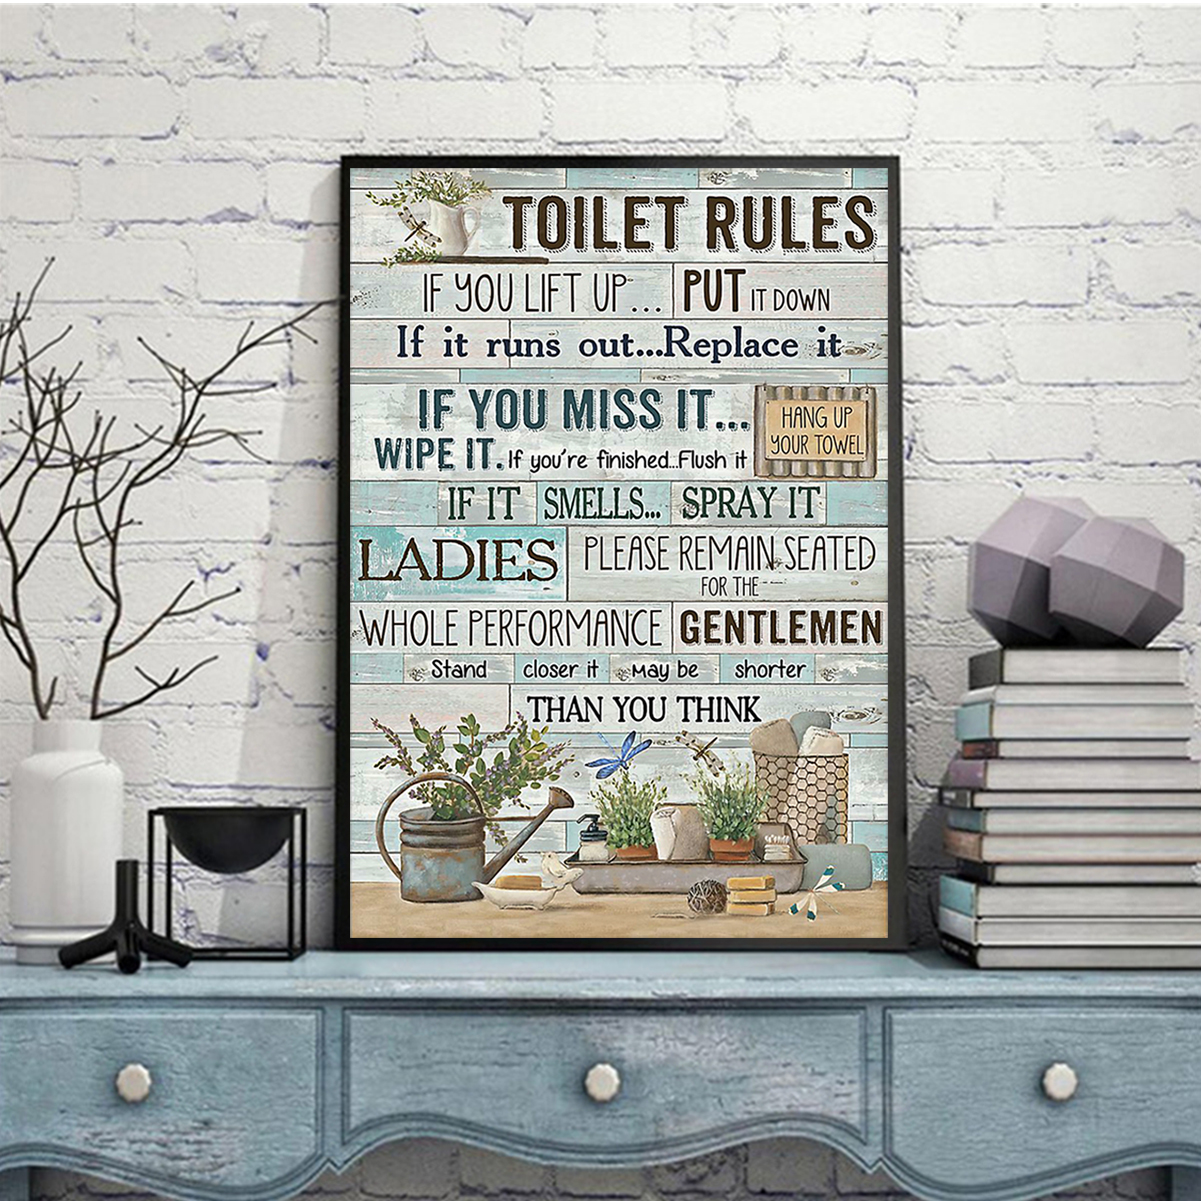 Toilet rules if you lift up put it down poster A2